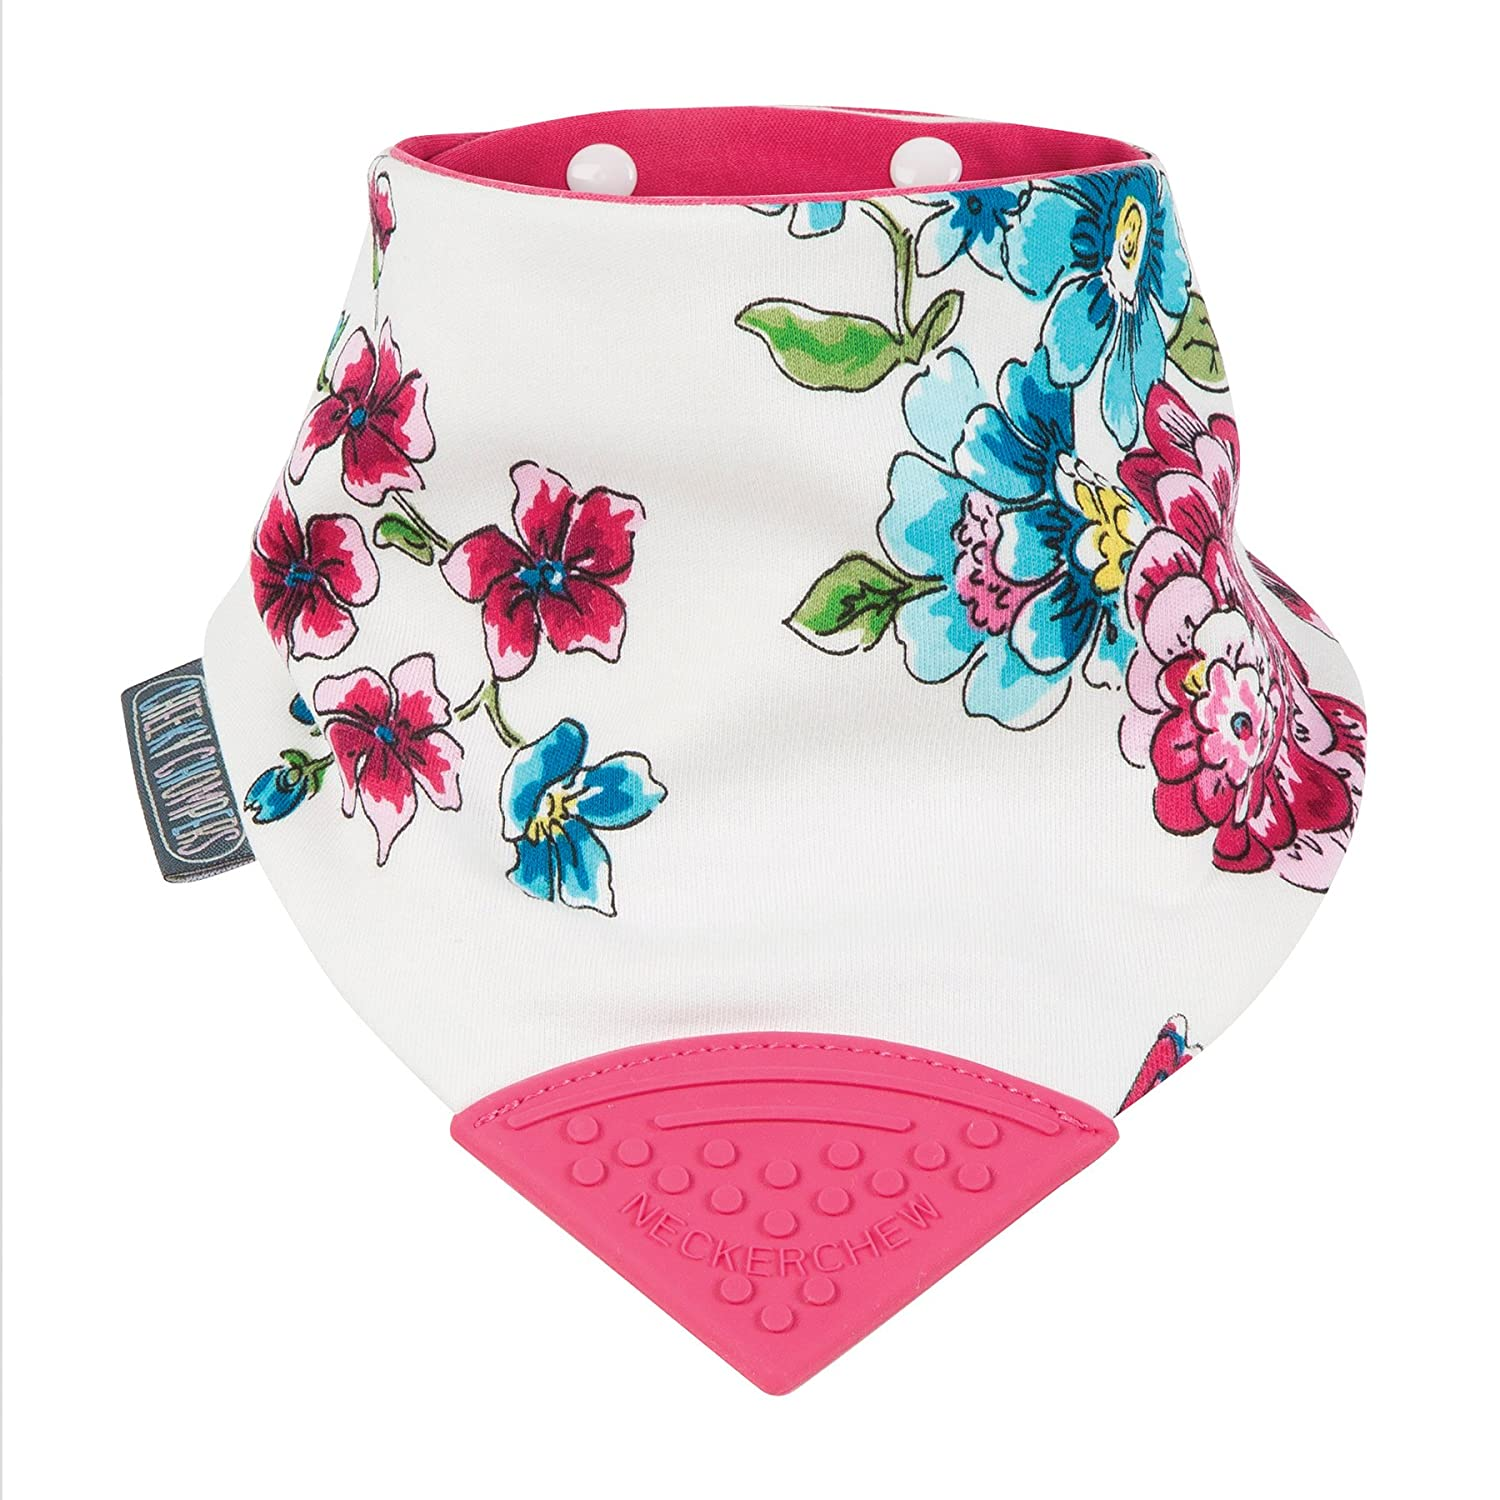 Cheeky Chompers - Anna Floral 710685.0